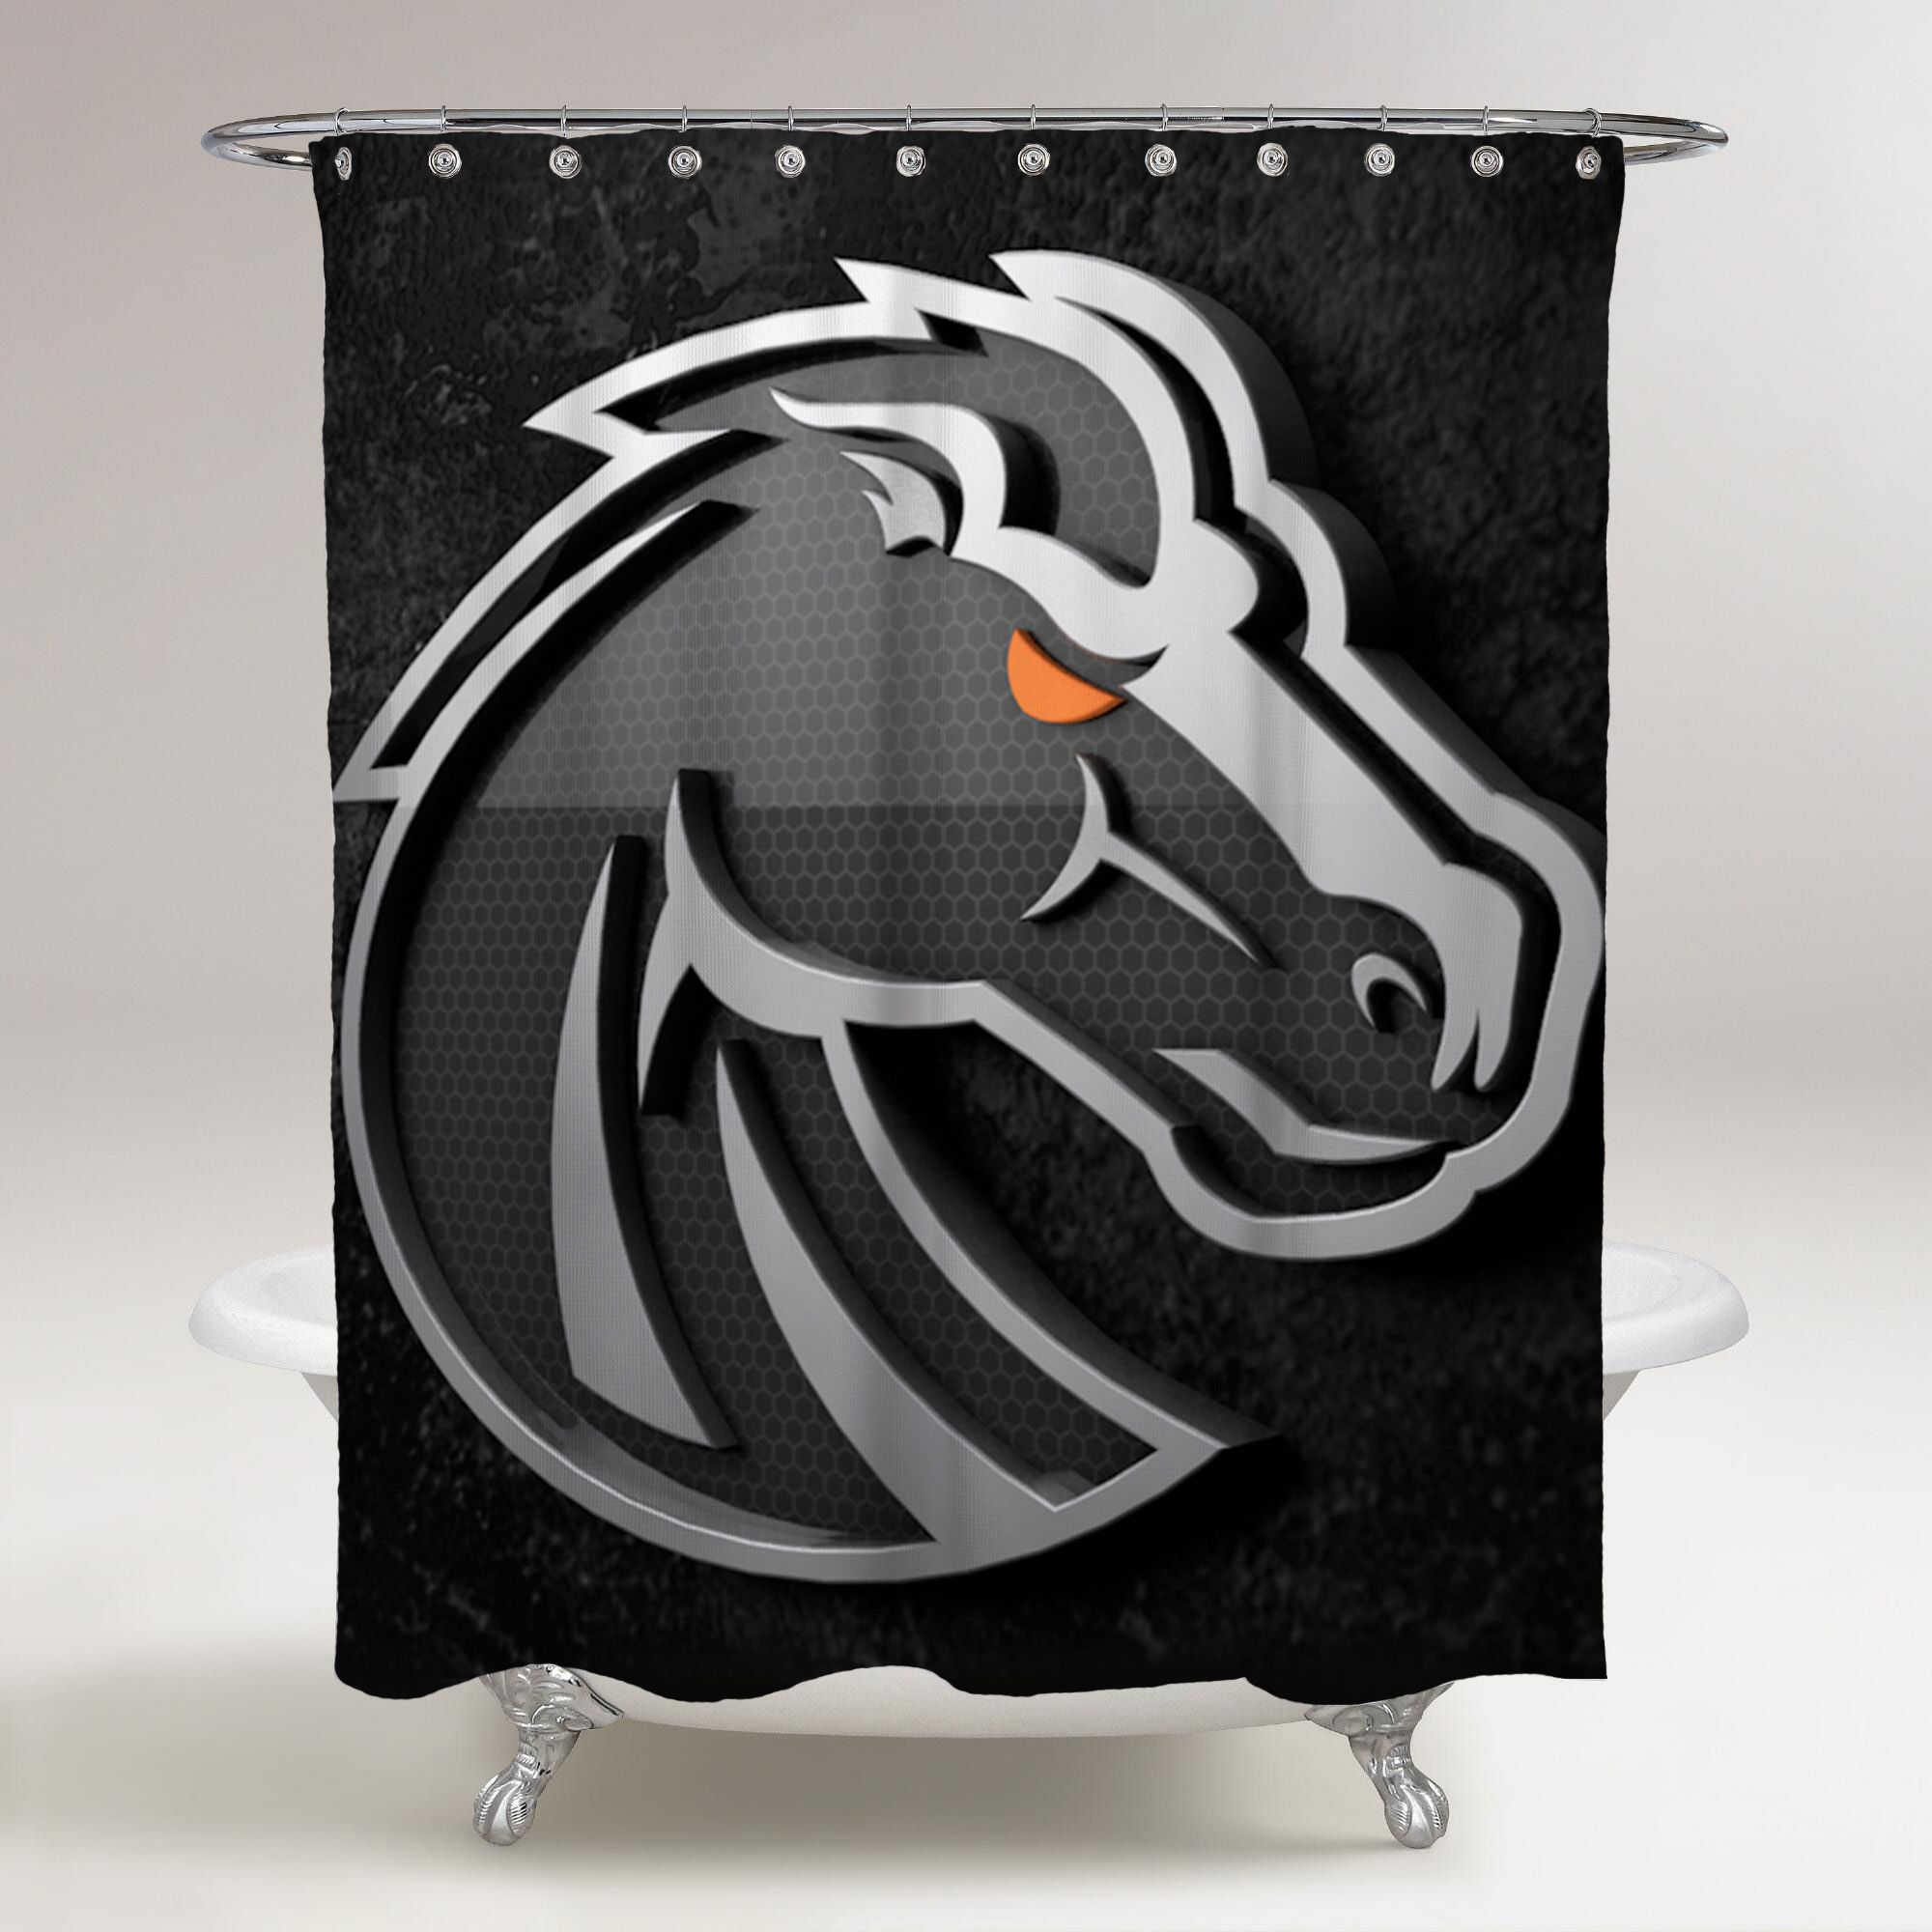 Boise State Broncos Logo Black Background Printed Shower Curtain